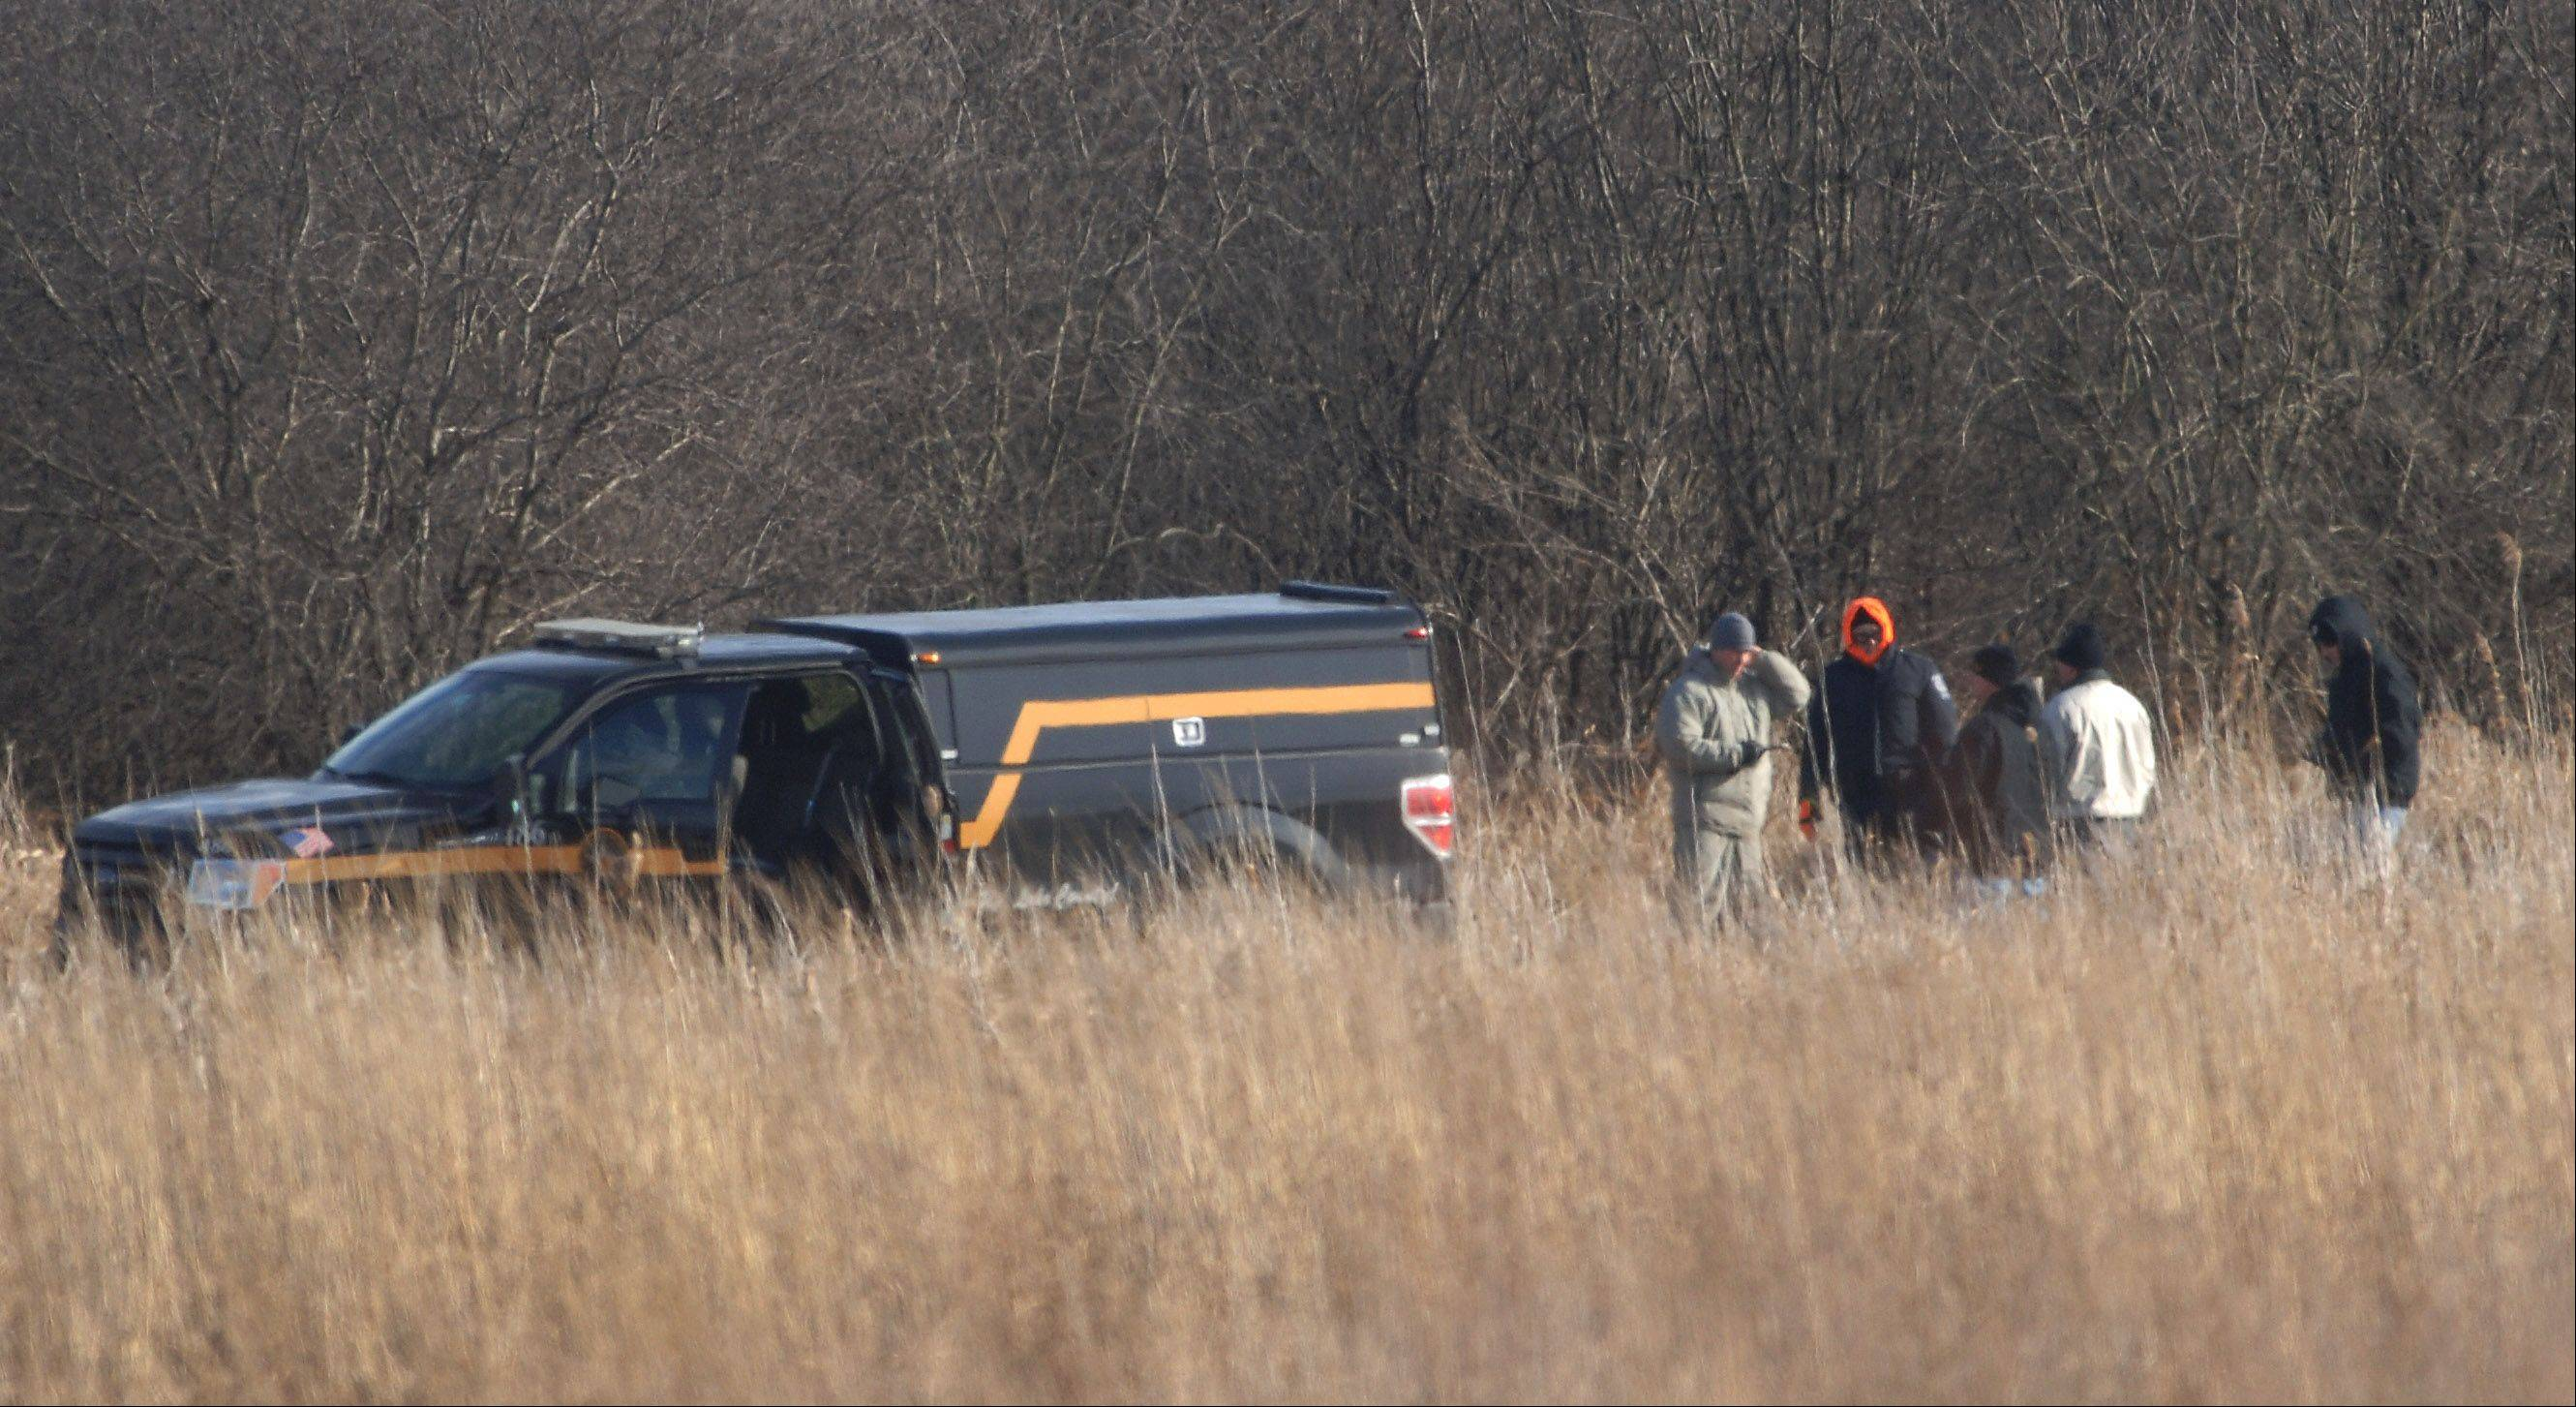 Police search the grounds in Round Lake Park near Campbell Airport on Tuesday for information related to the death of a Grayslake man, who was last seen early Sunday.